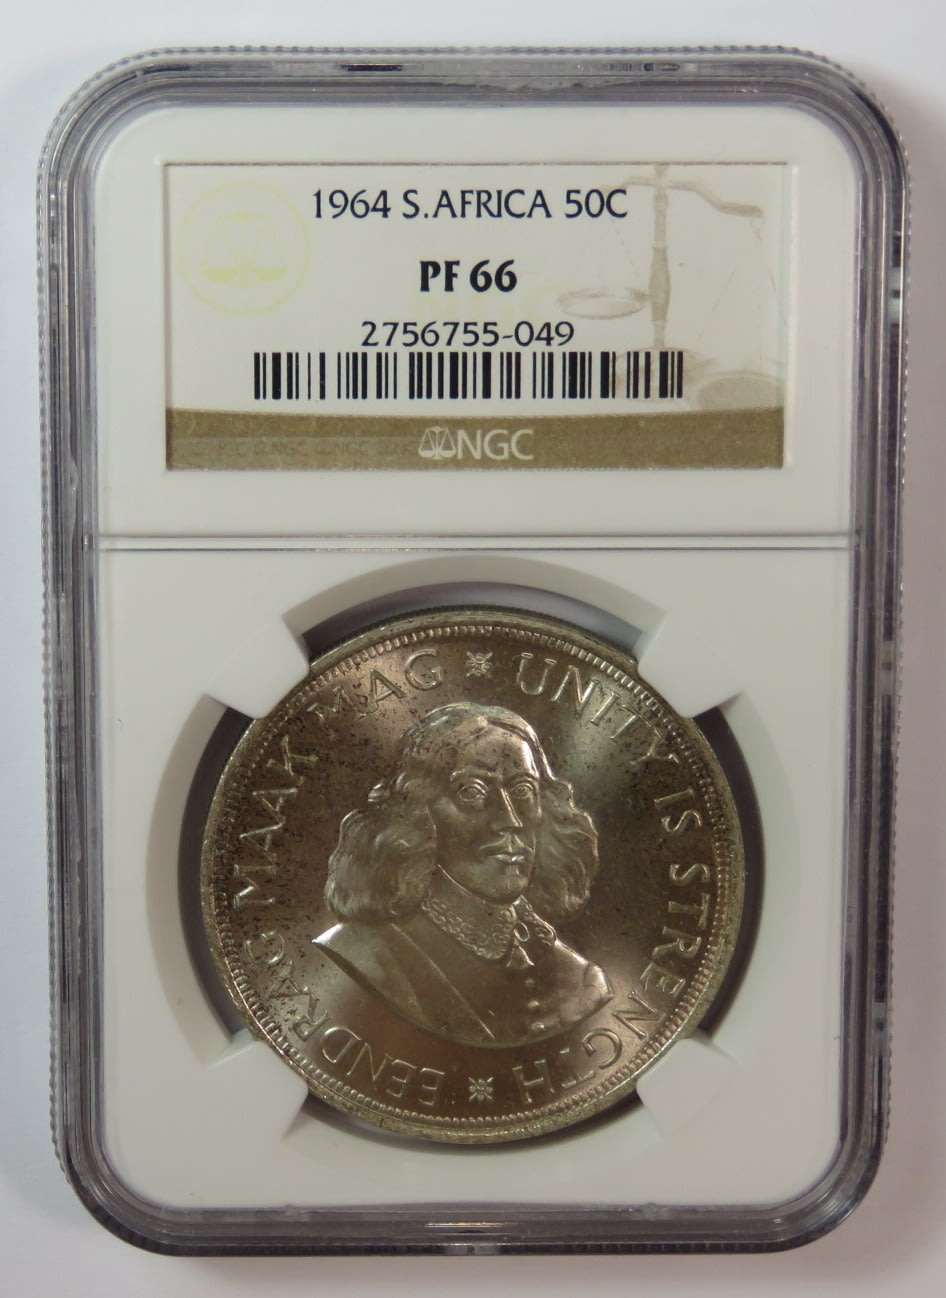 RSA graded 1964 NGC proof 66 silver 50c